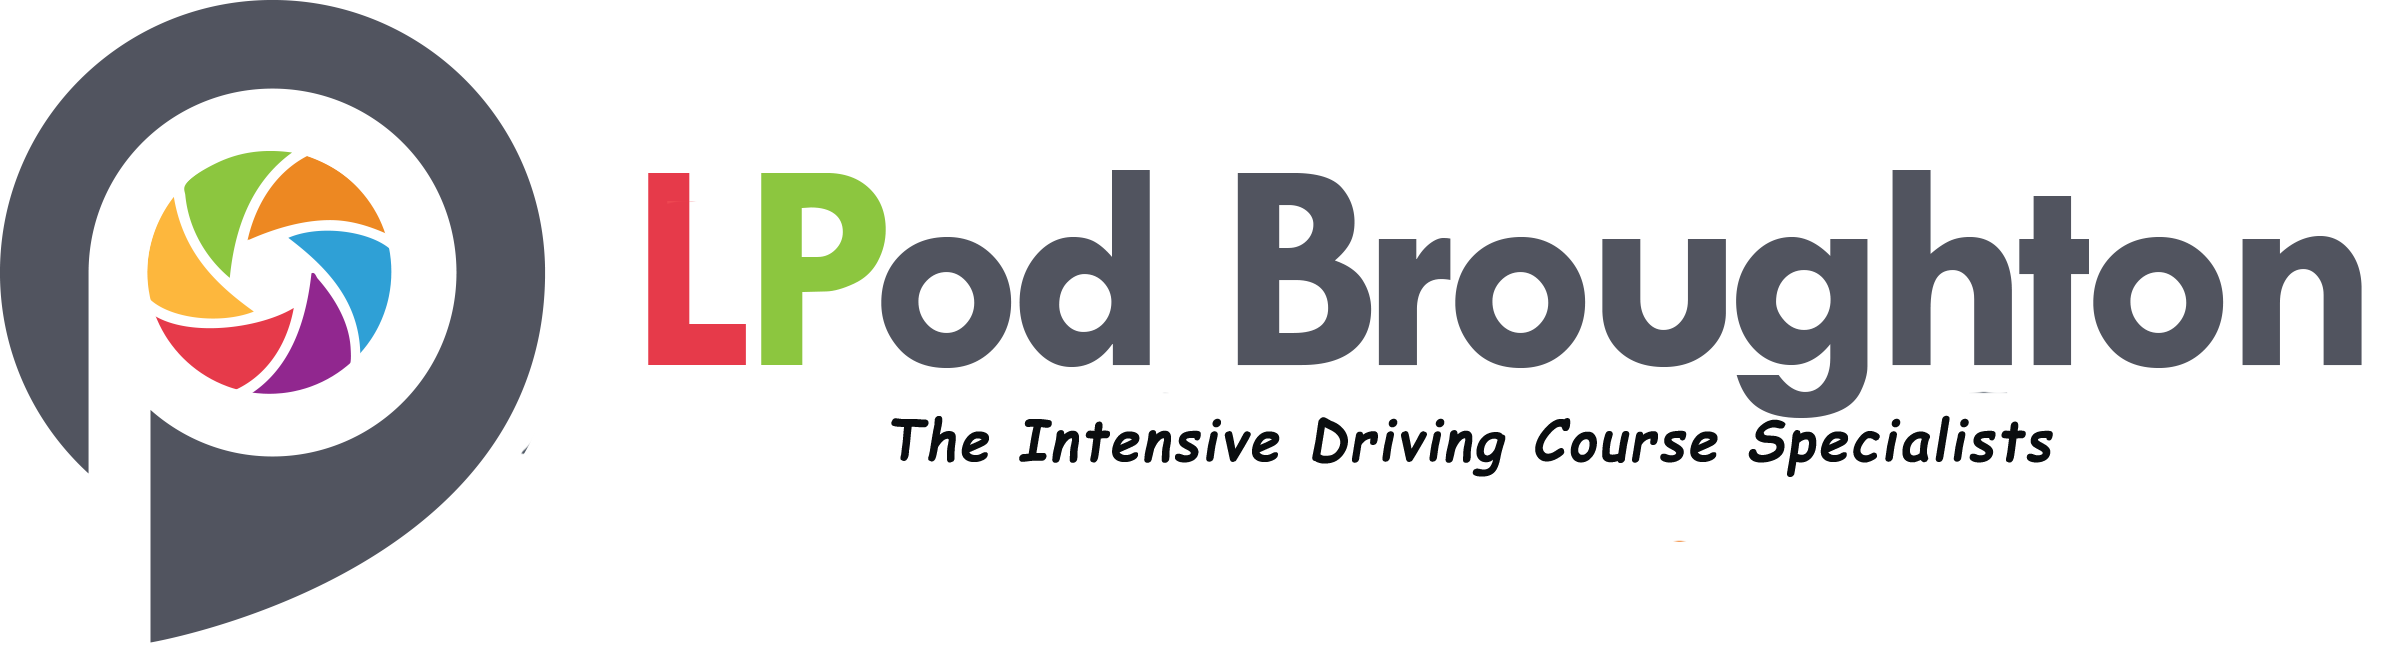 intensive driving courses in Broughton